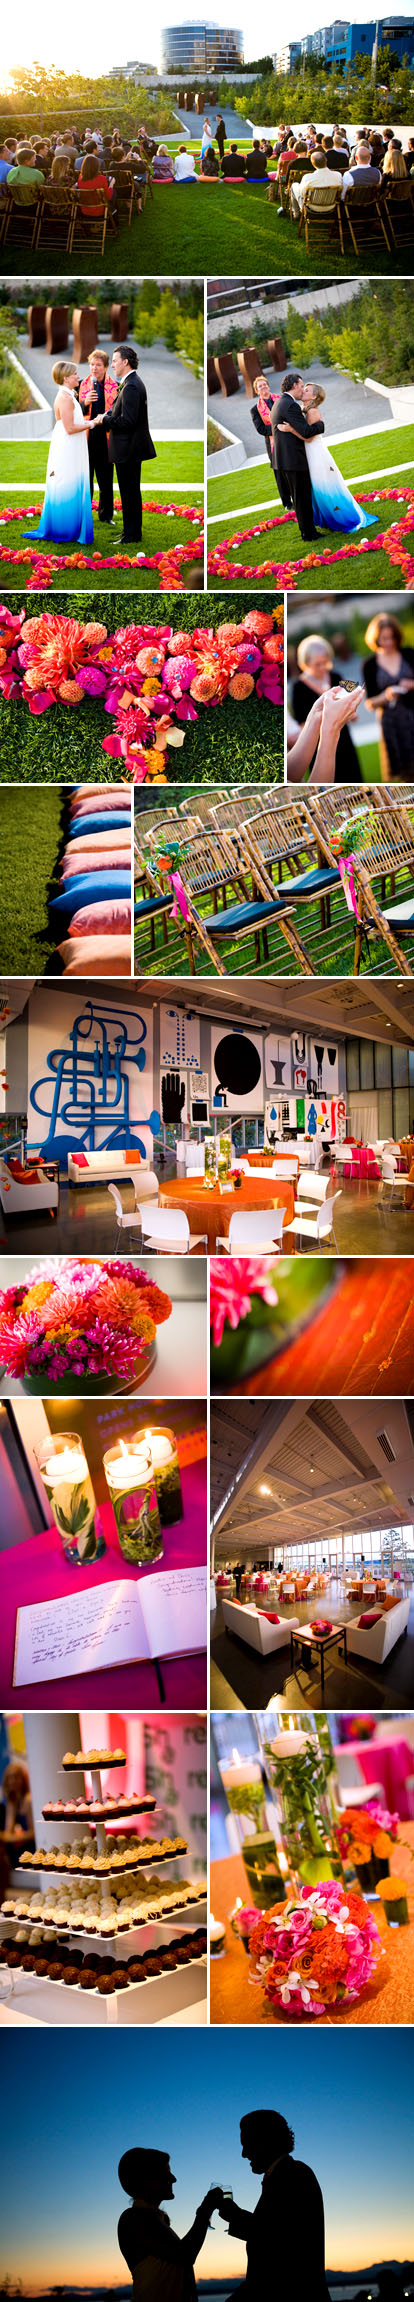 Stephanie Cristalli Photography, Indian inspired summer wedding, Olympic Sculpture Park Seattle